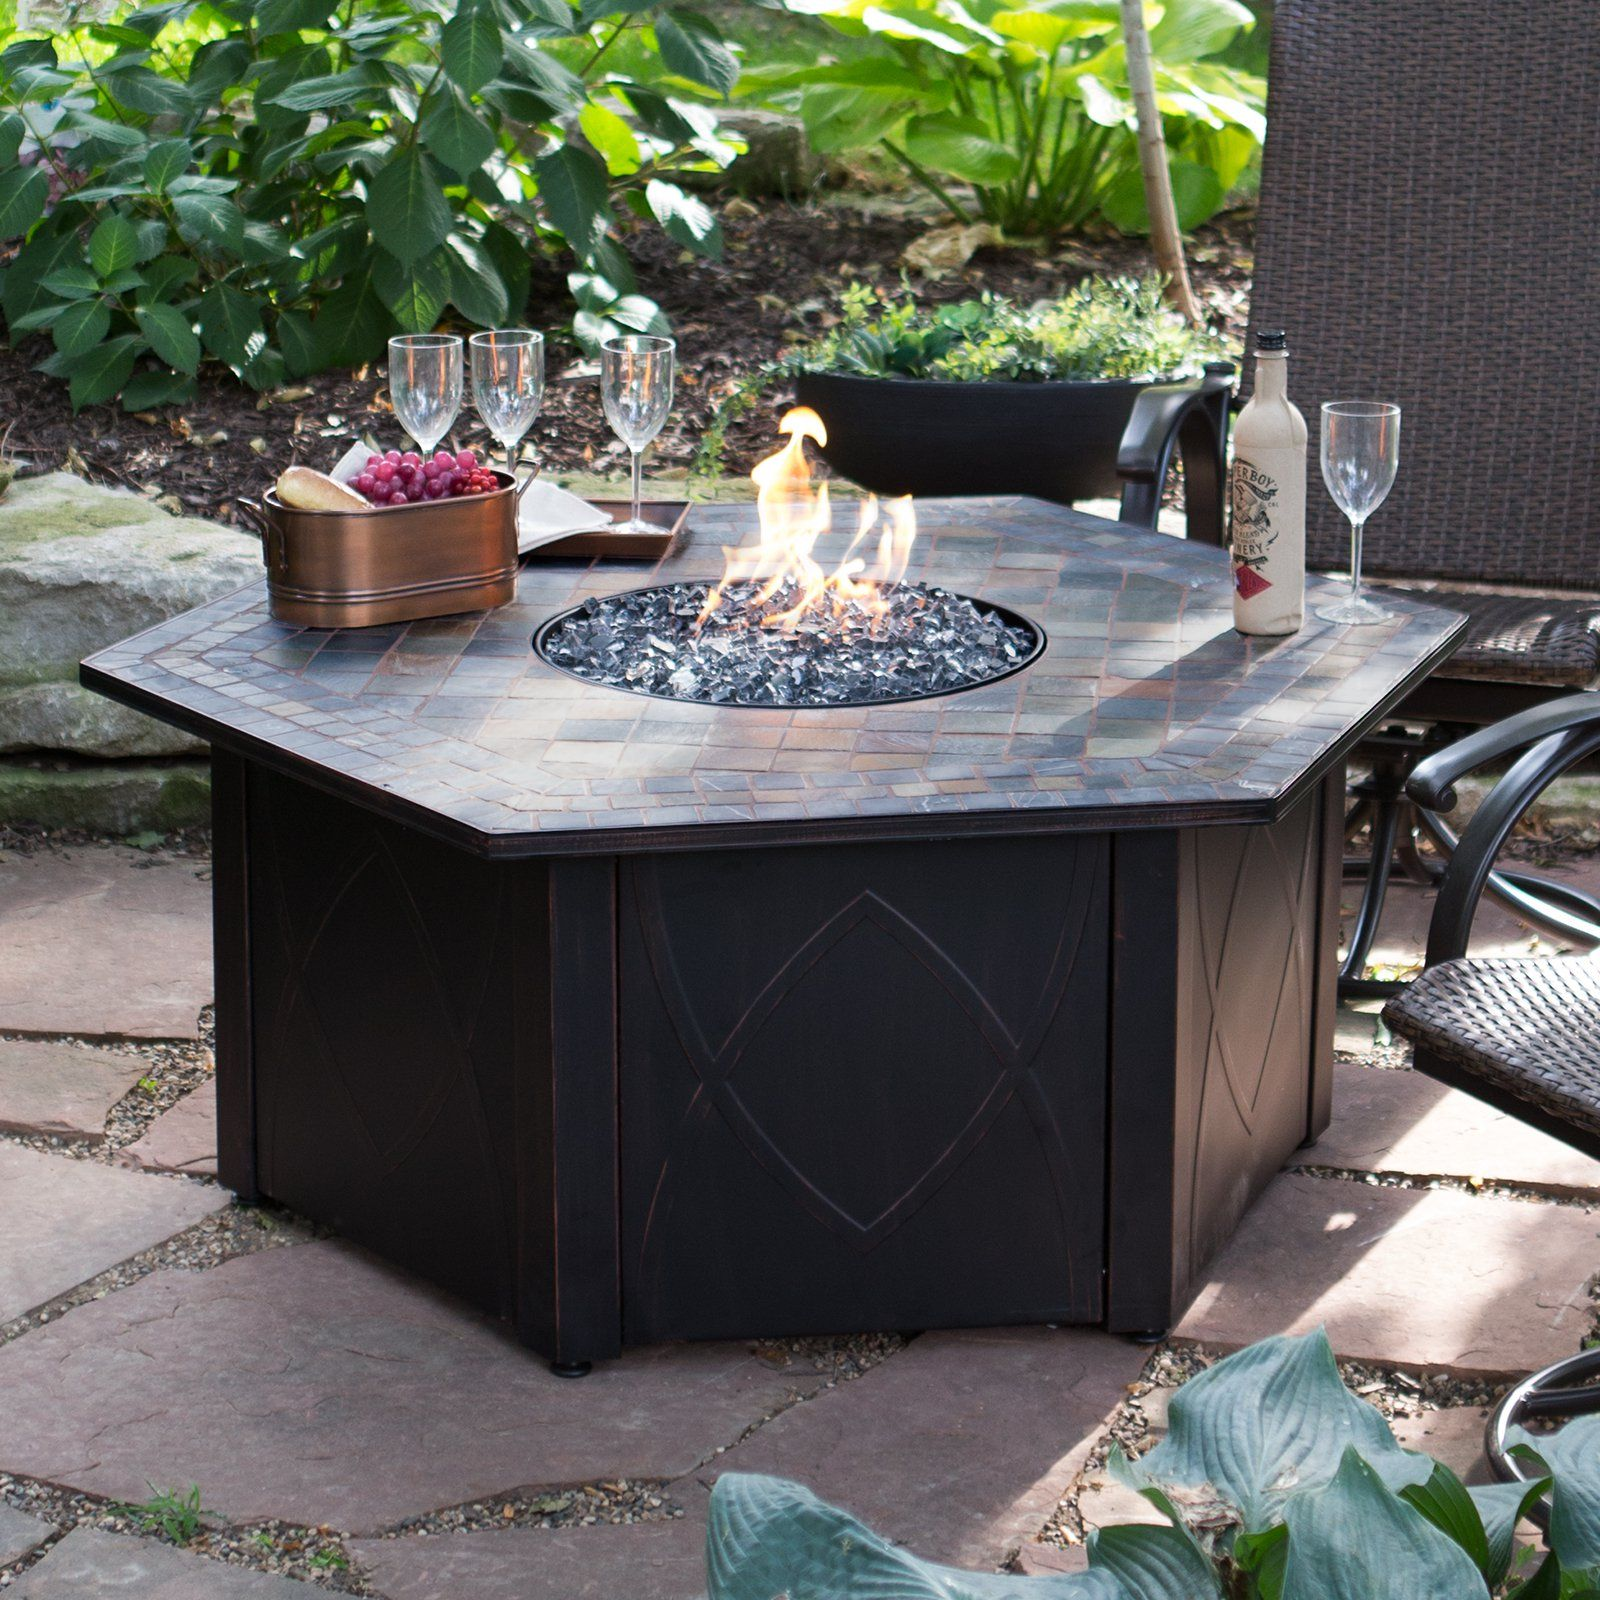 Decorative Patio Tiles Captivating Uniflame 55Indecorative Slate Tile Lp Gas Outdoor Fire Pit With Inspiration Design